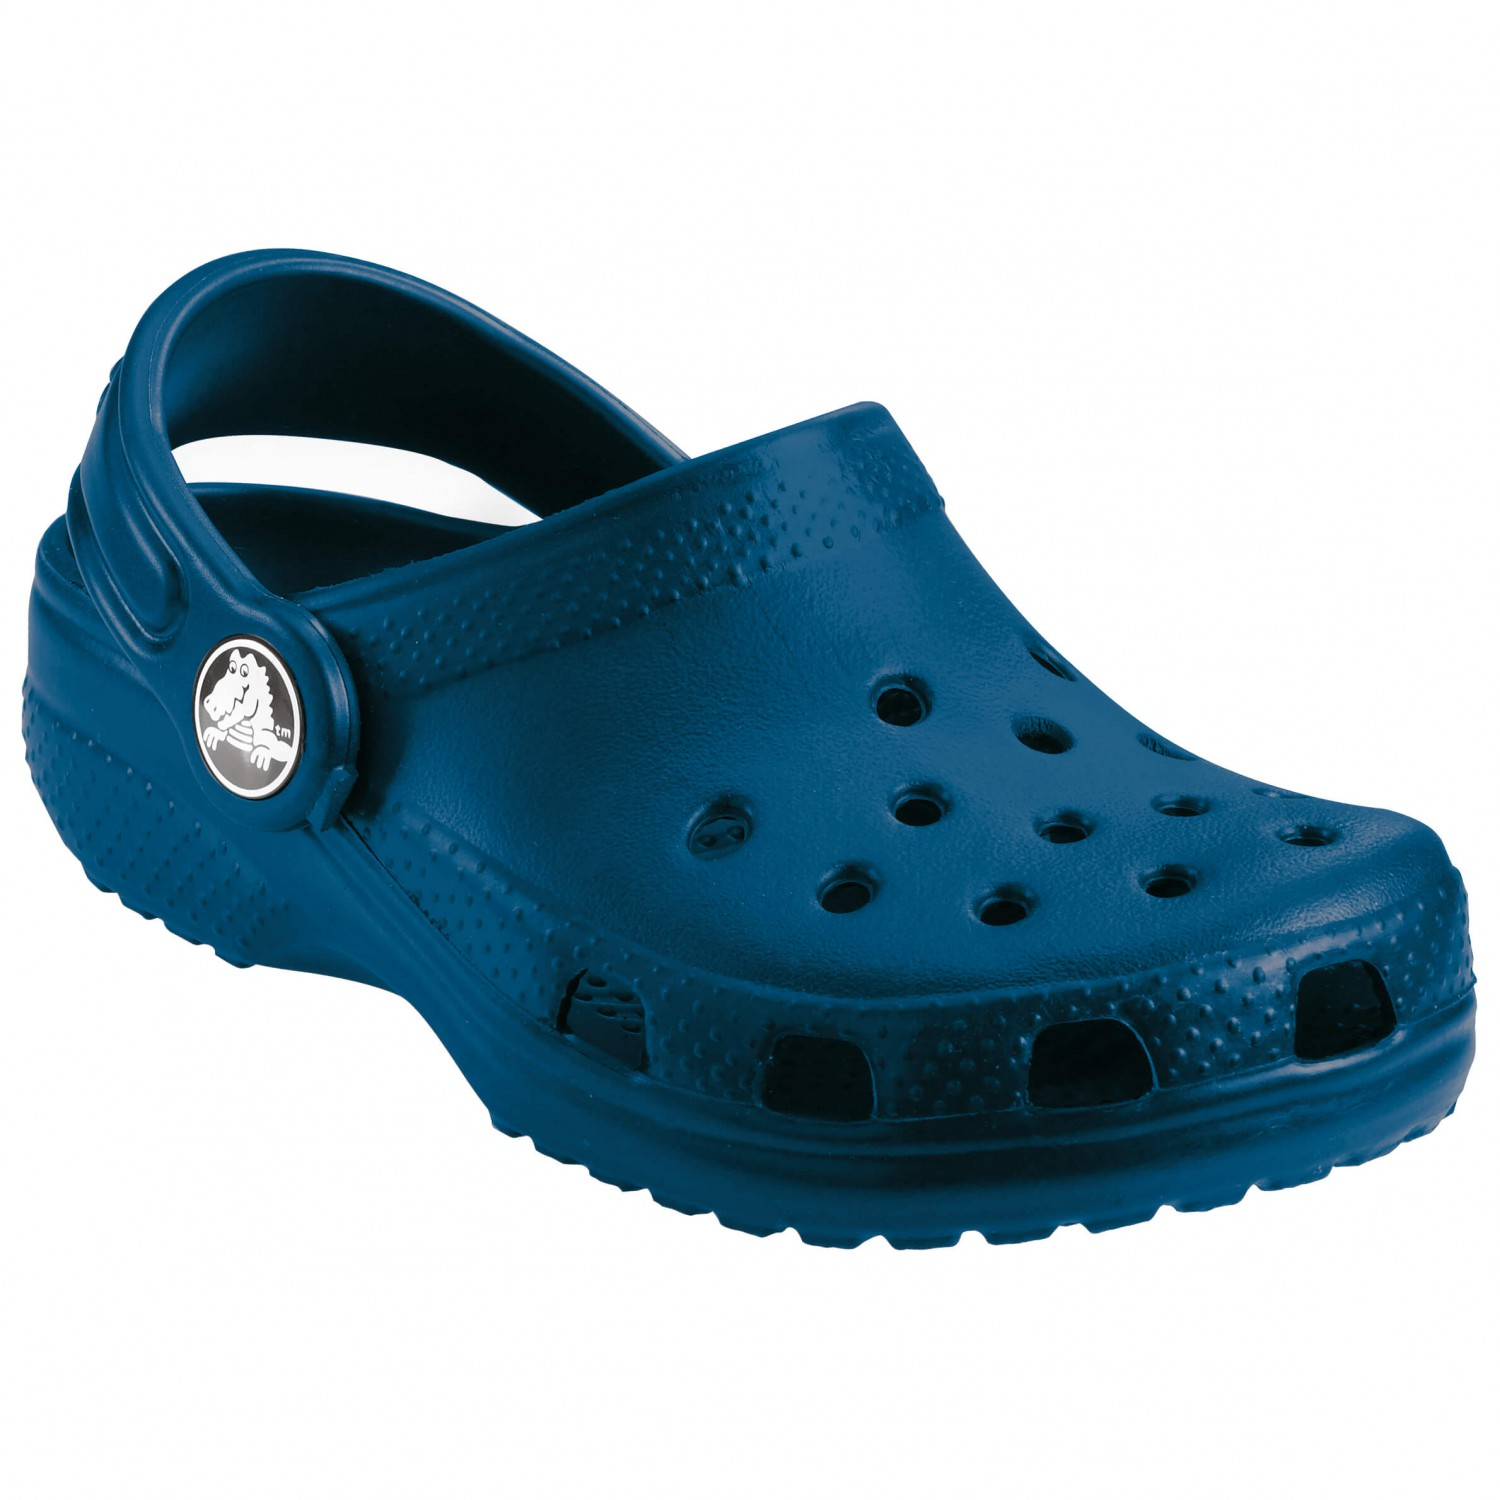 viplikecuatoi.ml: Buy crocs Kids Unisex Ralen K Clogs online at low price in India on viplikecuatoi.ml Huge collection of branded shoes only at Amazon IndiaReviews: